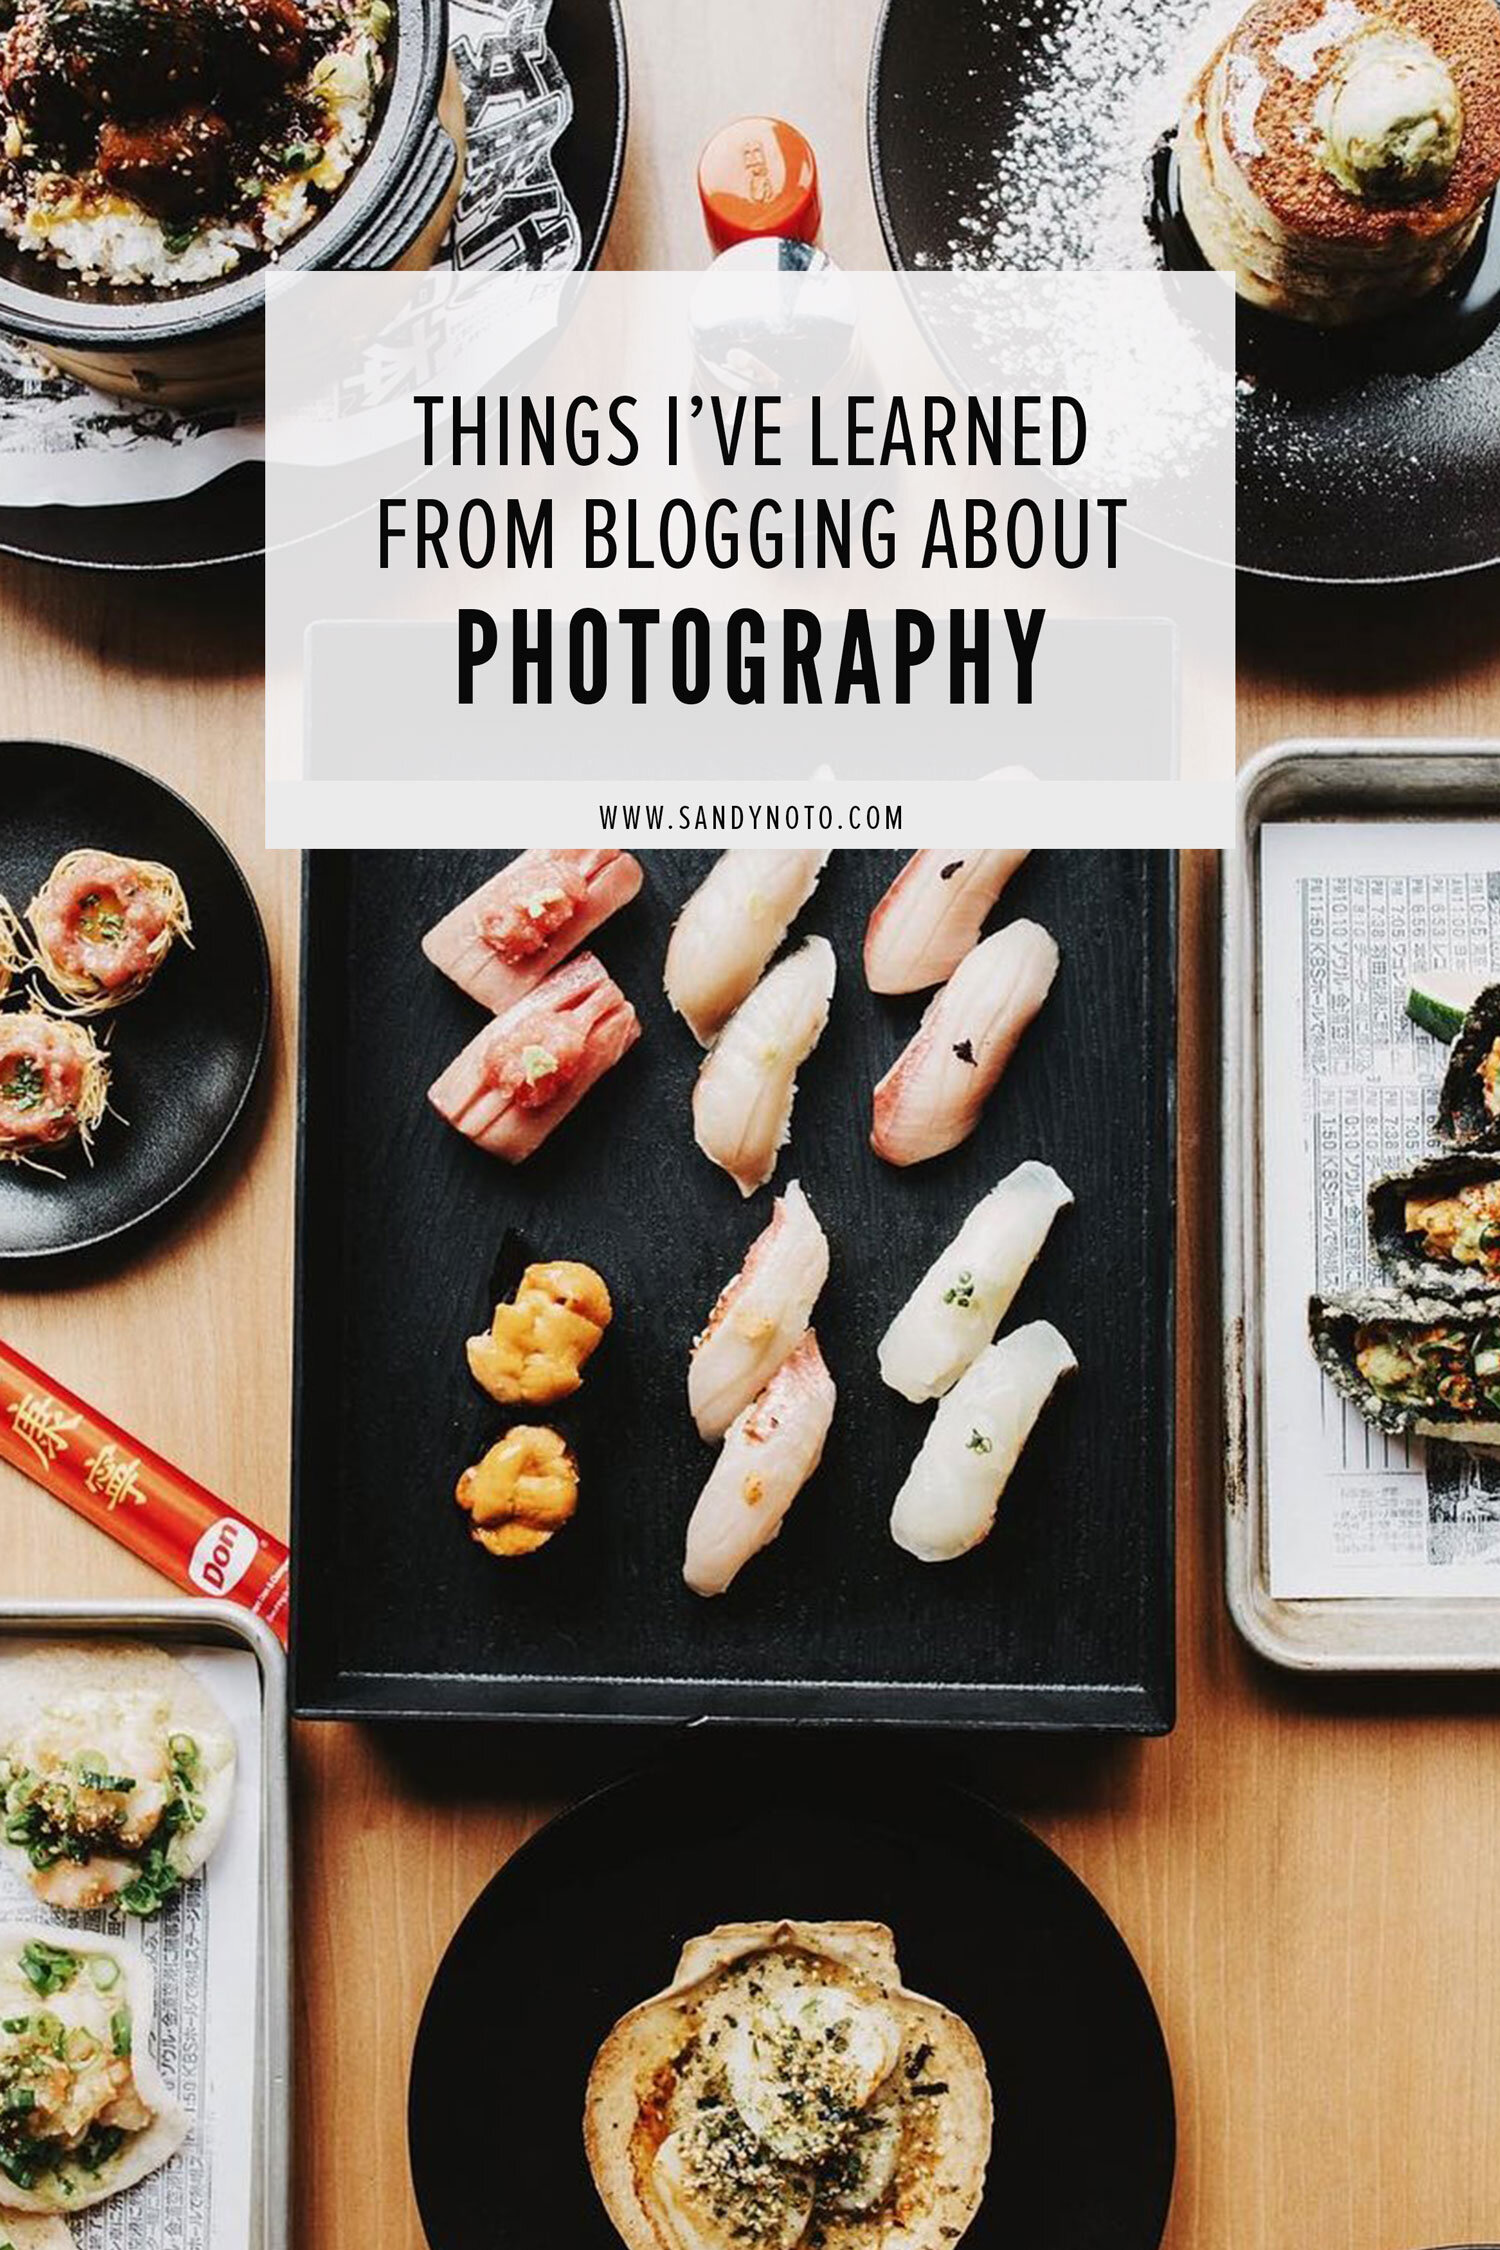 What I've Learned from Blogging about Photography